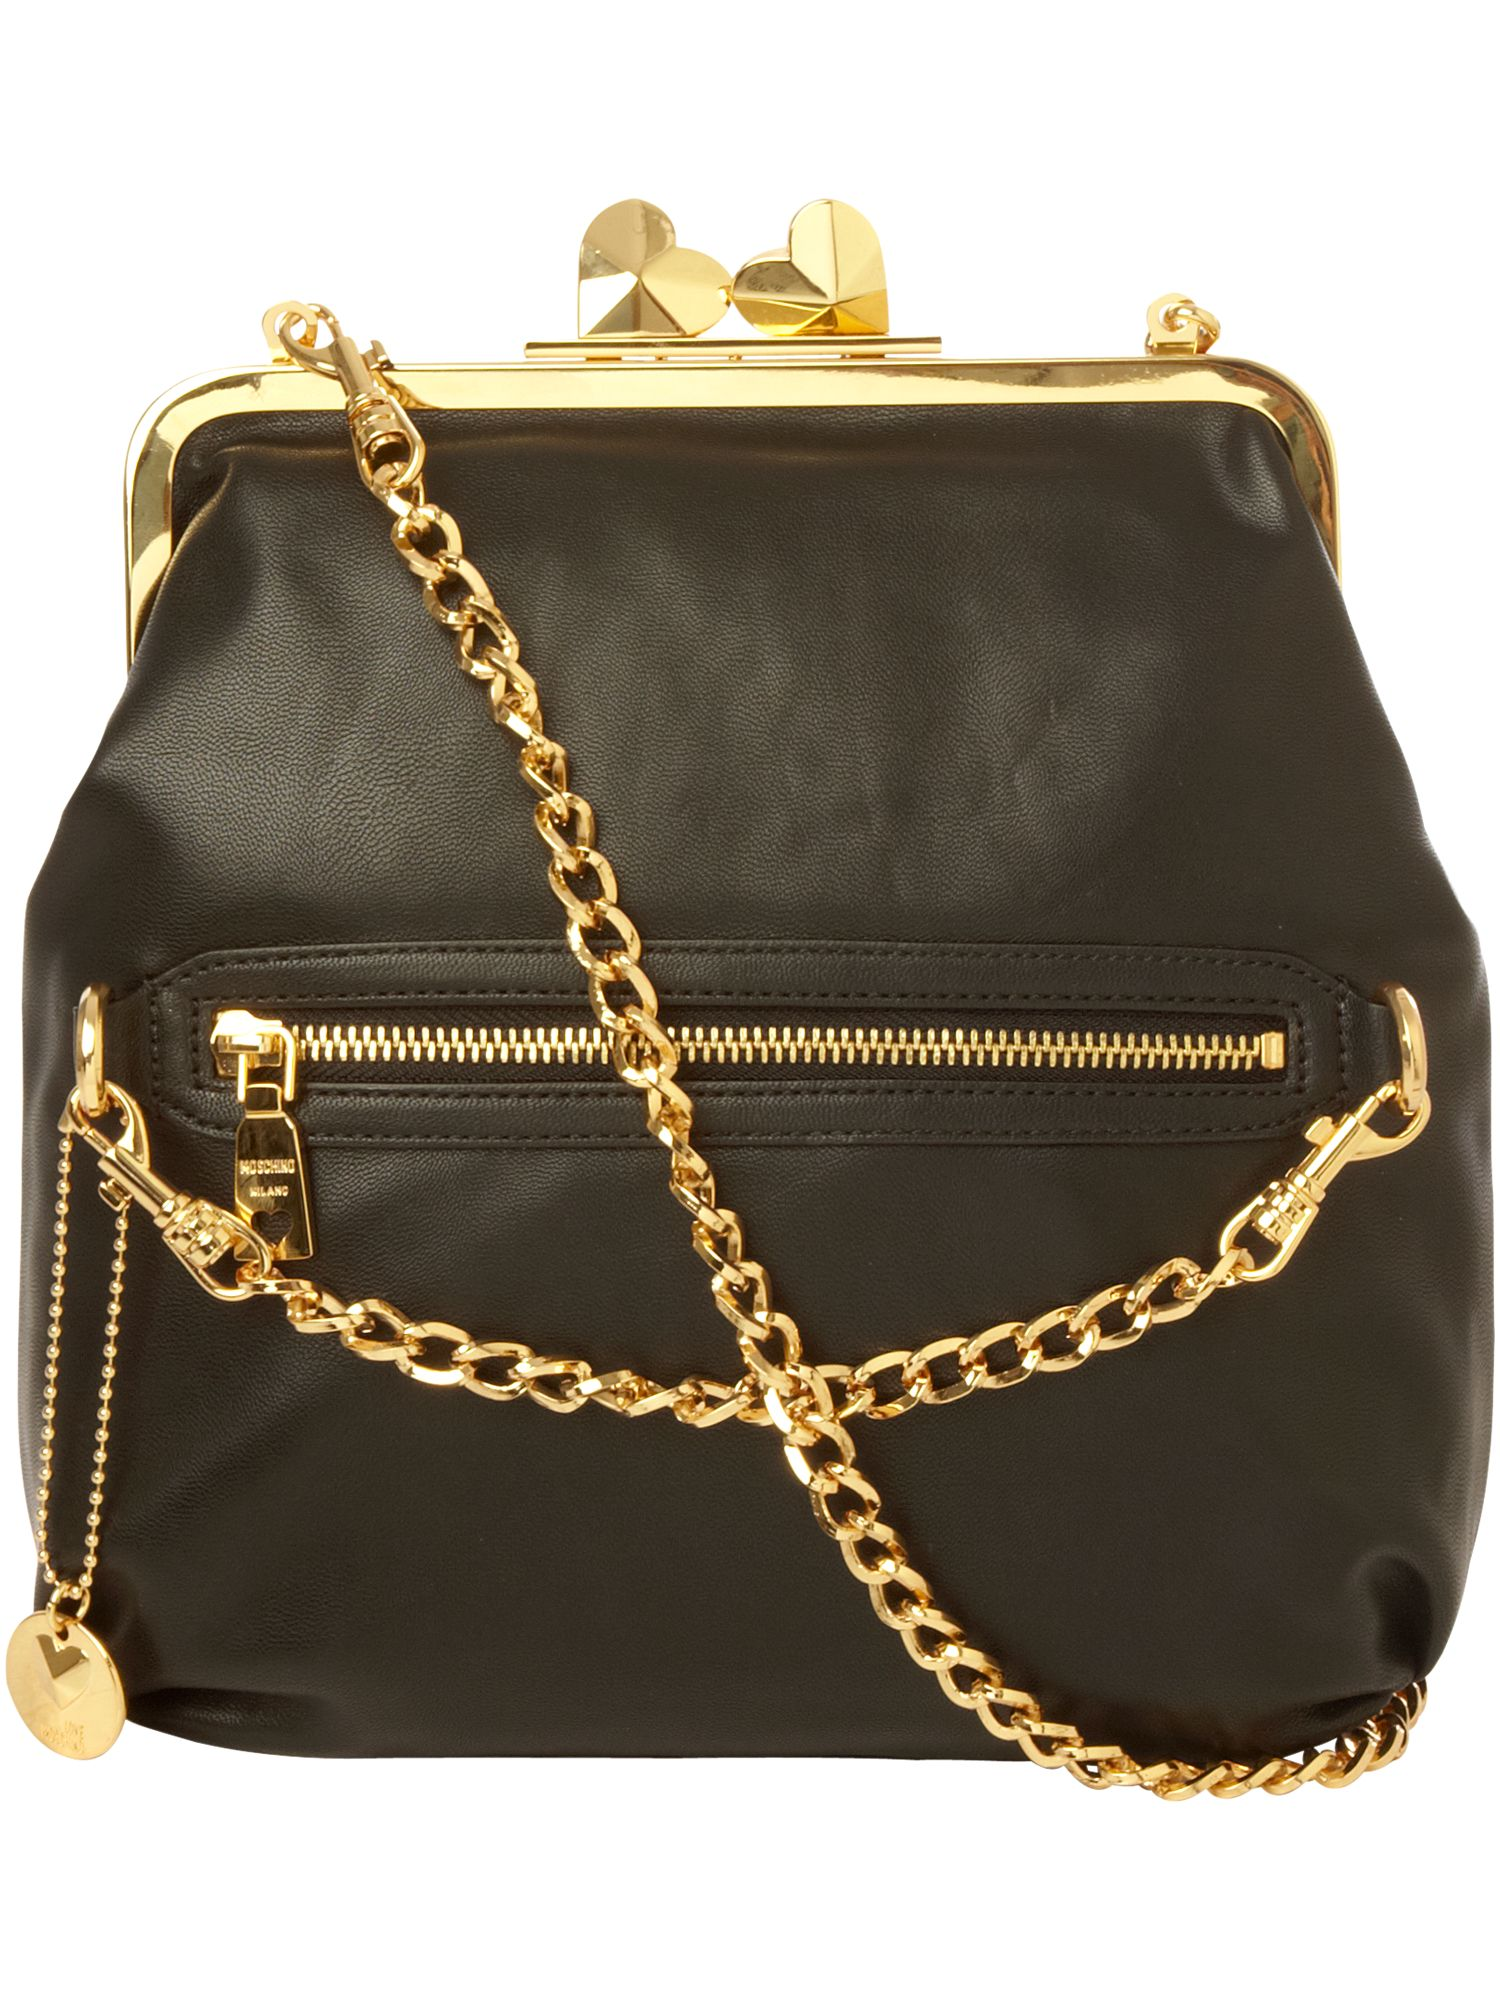 Love Moschino Nappa Valley medium leather shoulder bag product image